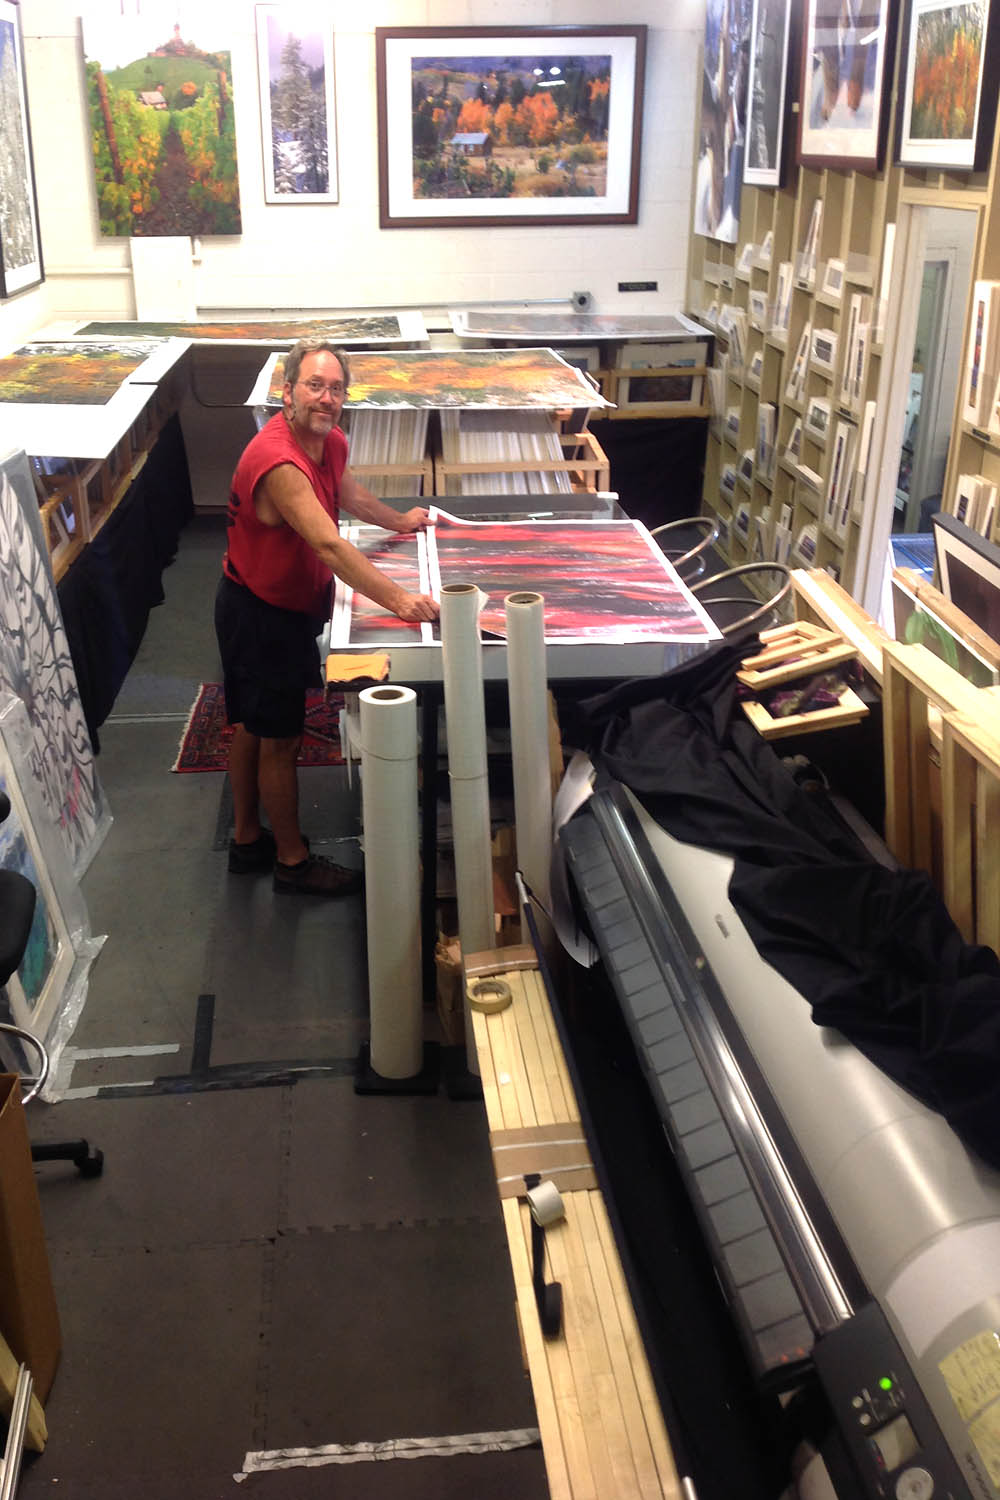 Printing Studio at Dirk Yuricich Photography